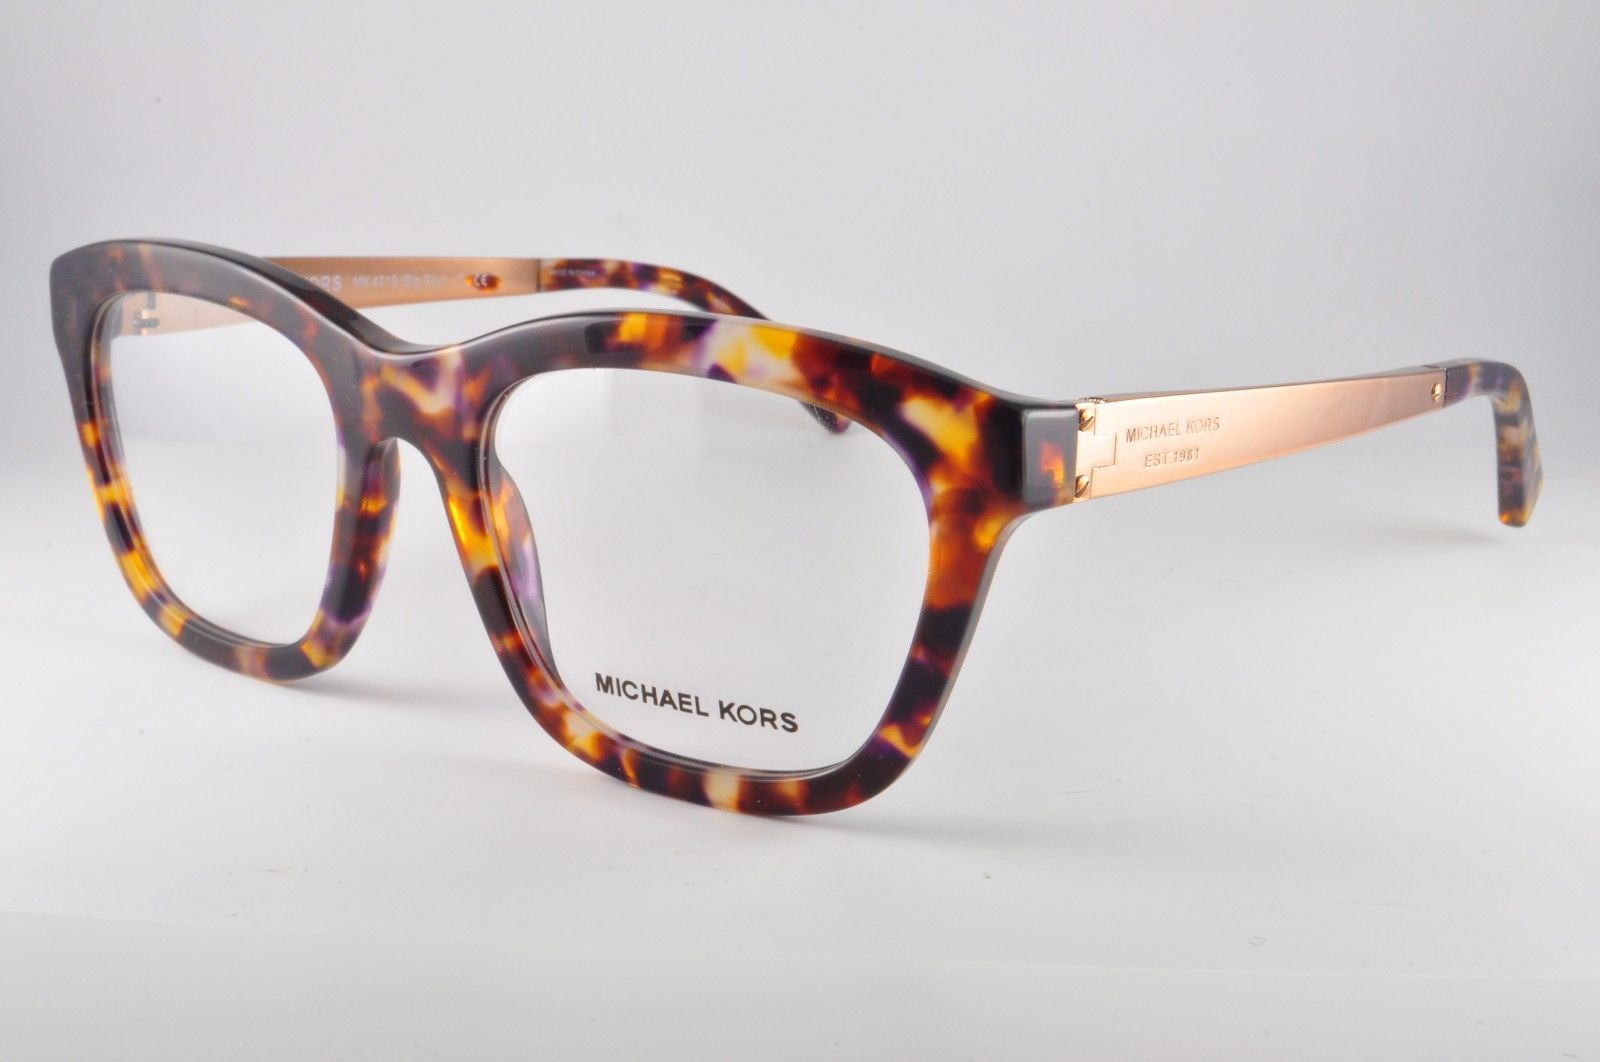 b0cd7550100 MICHAEL KORS EYEGLASSES MK4019 3031 52-19-135 BIG SUNSET CONFETTI OPTICAL  FRAME -  68.73